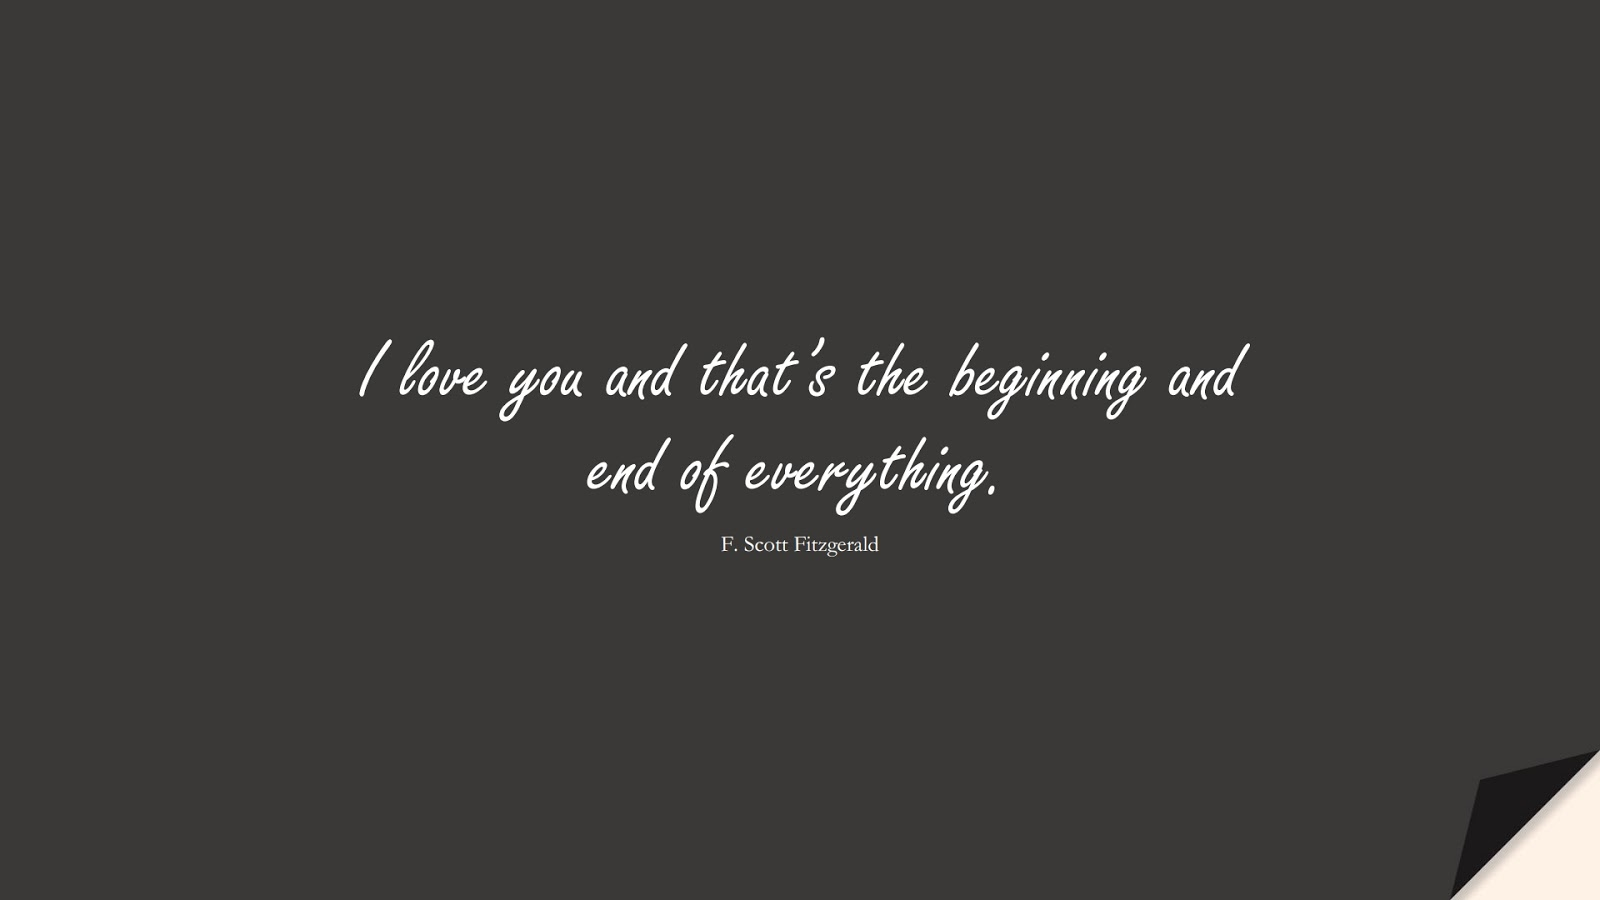 I love you and that's the beginning and end of everything. (F. Scott Fitzgerald);  #LoveQuotes